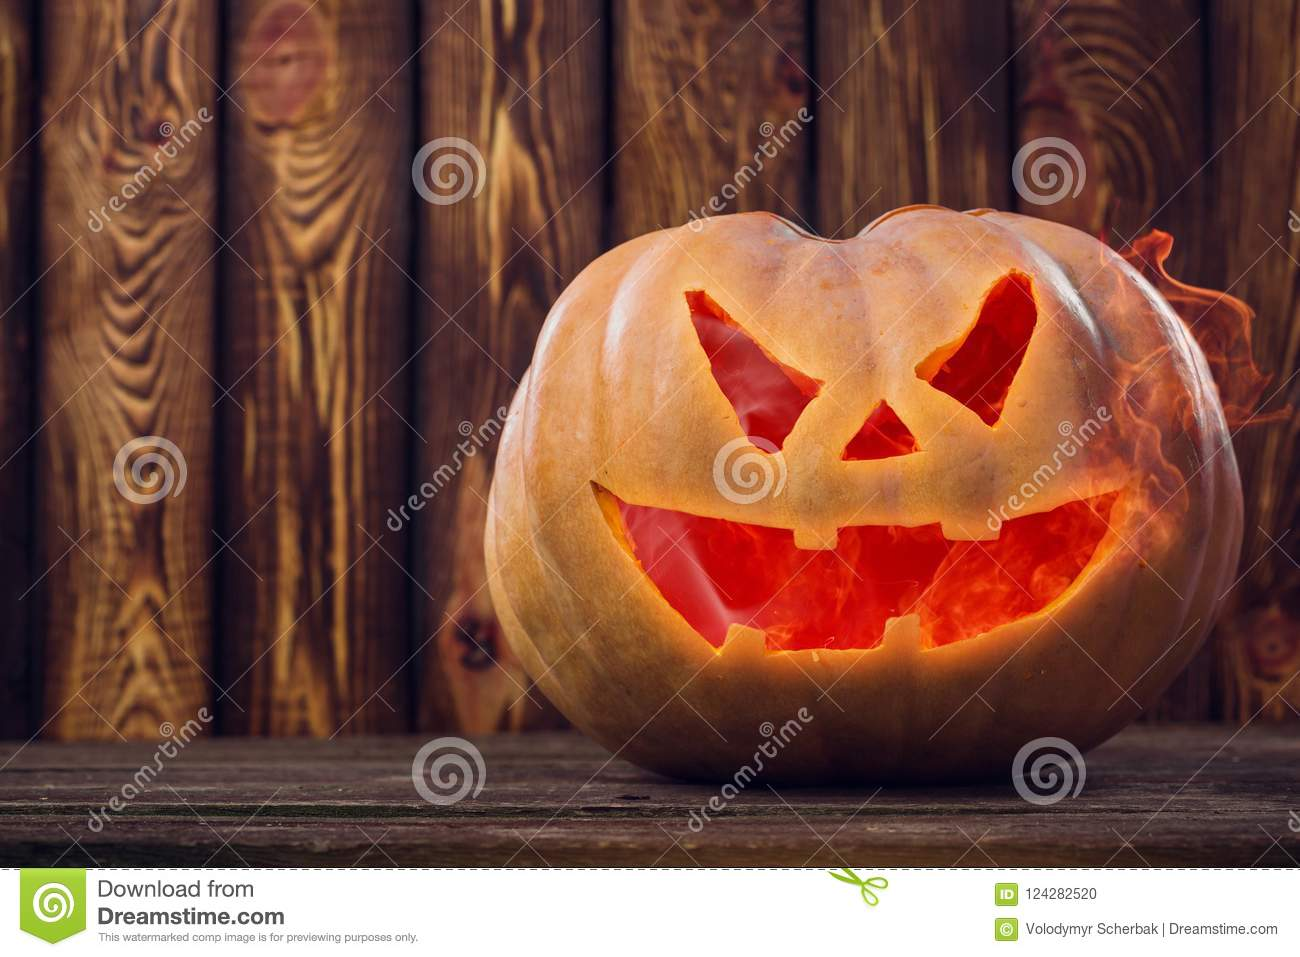 Halloween pumpkin design with copy space. place for text